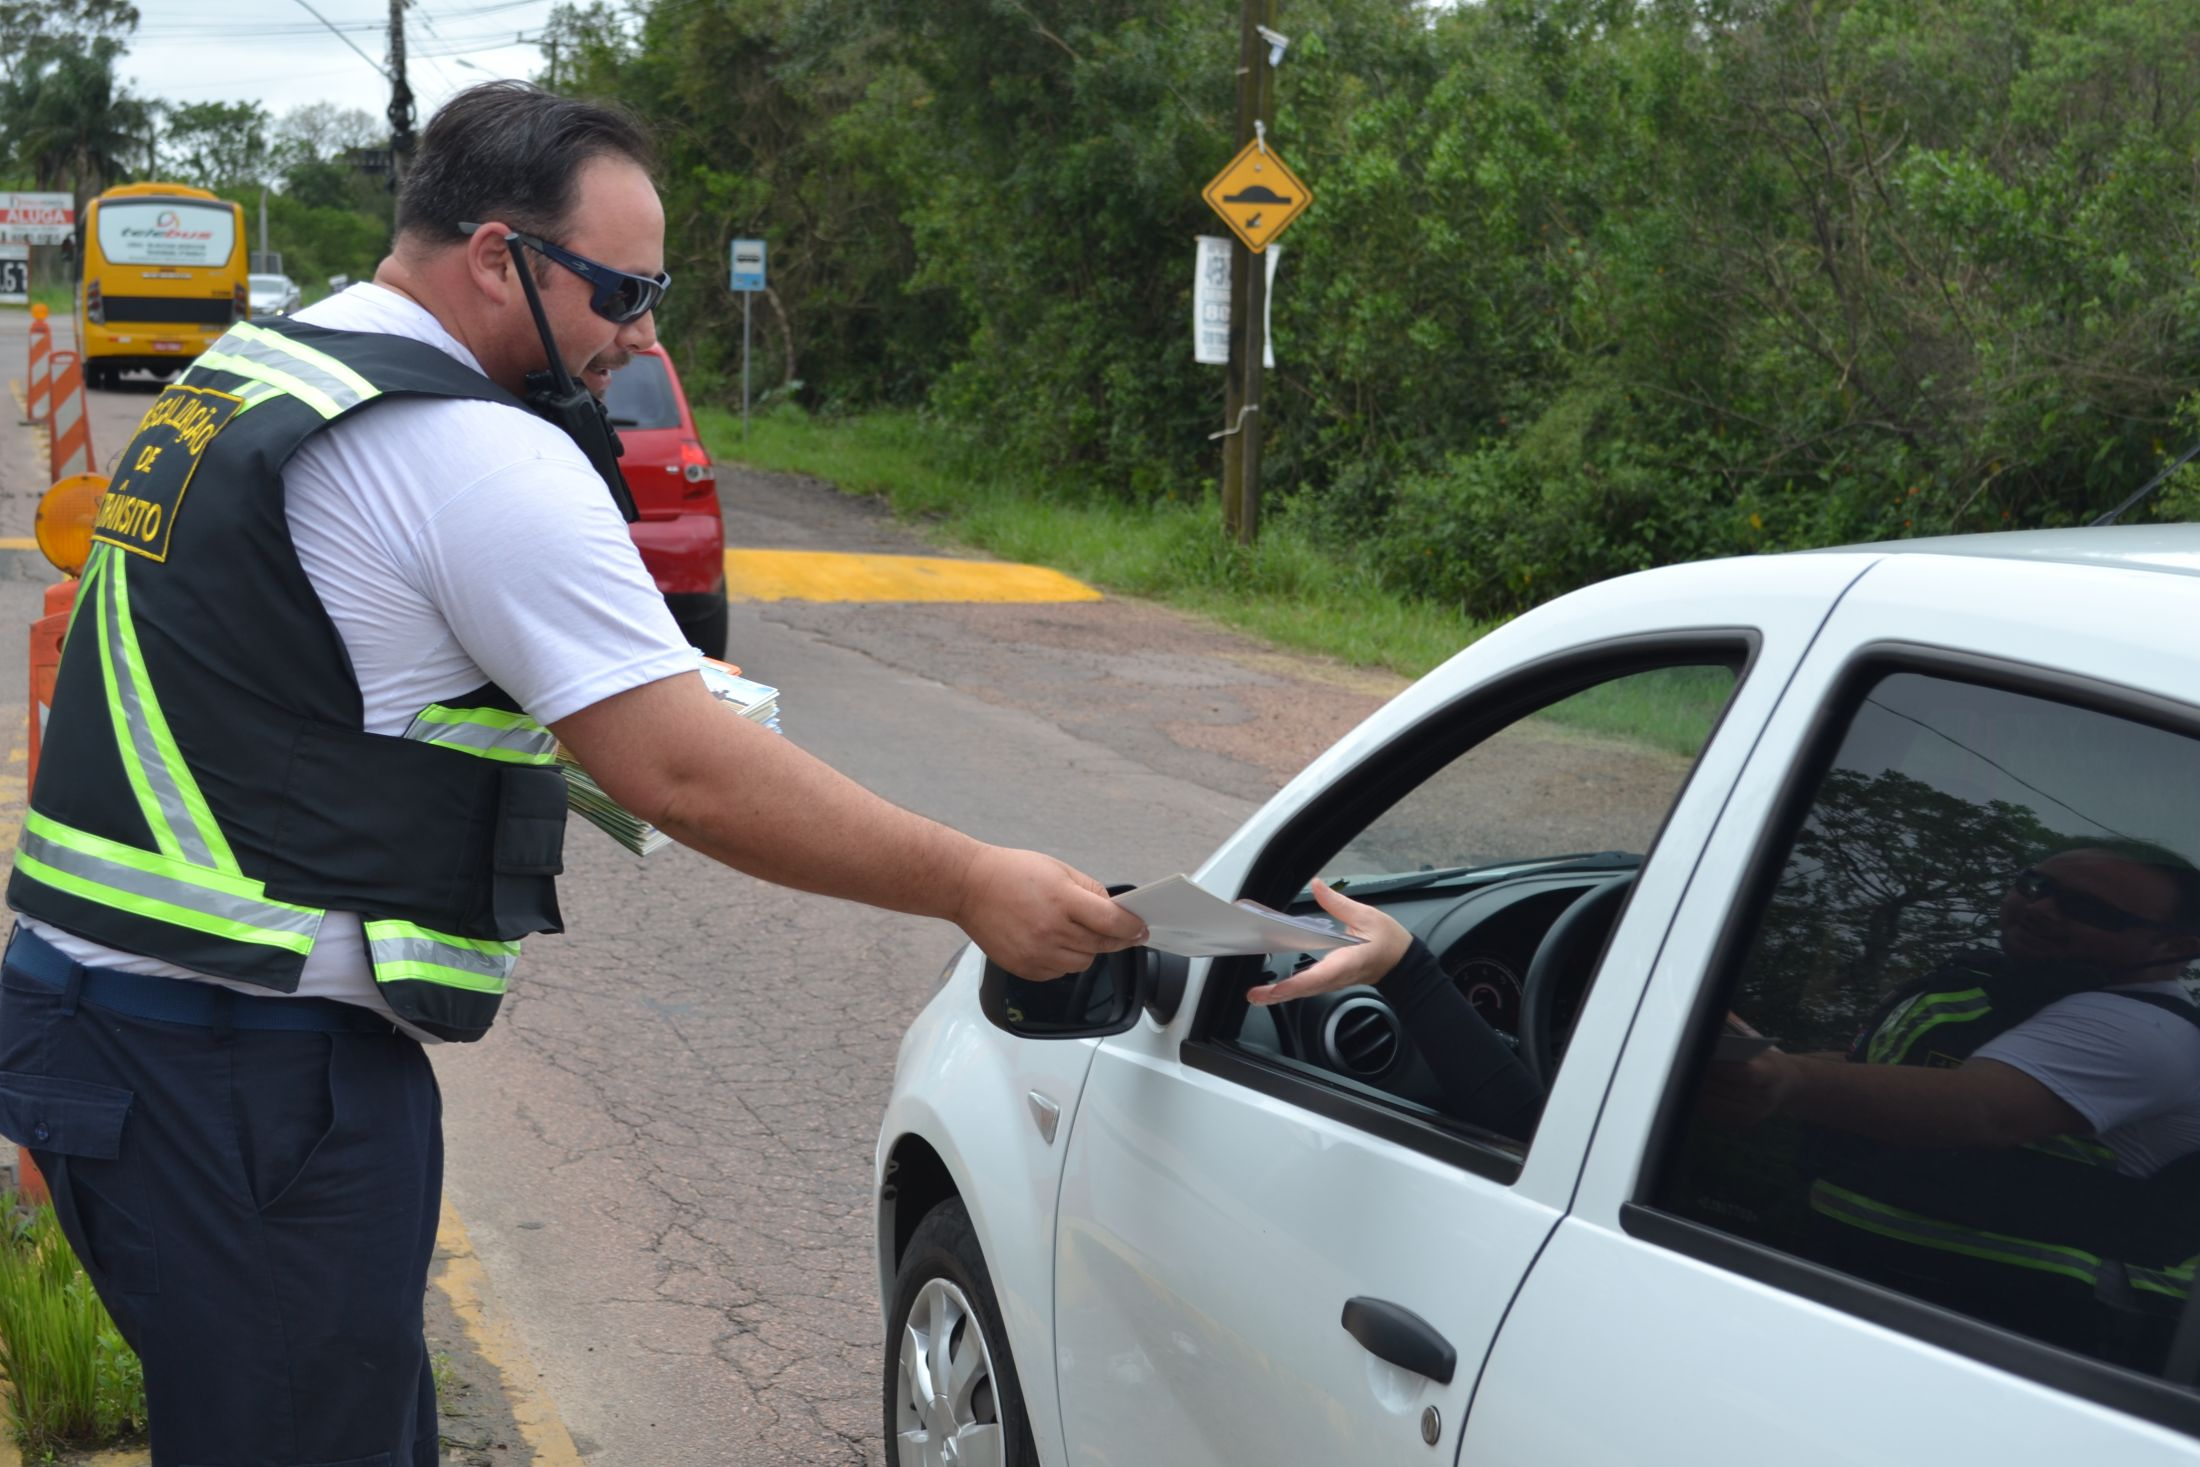 Noticia smtti-realiza-acao-de-educacao-no-transito-